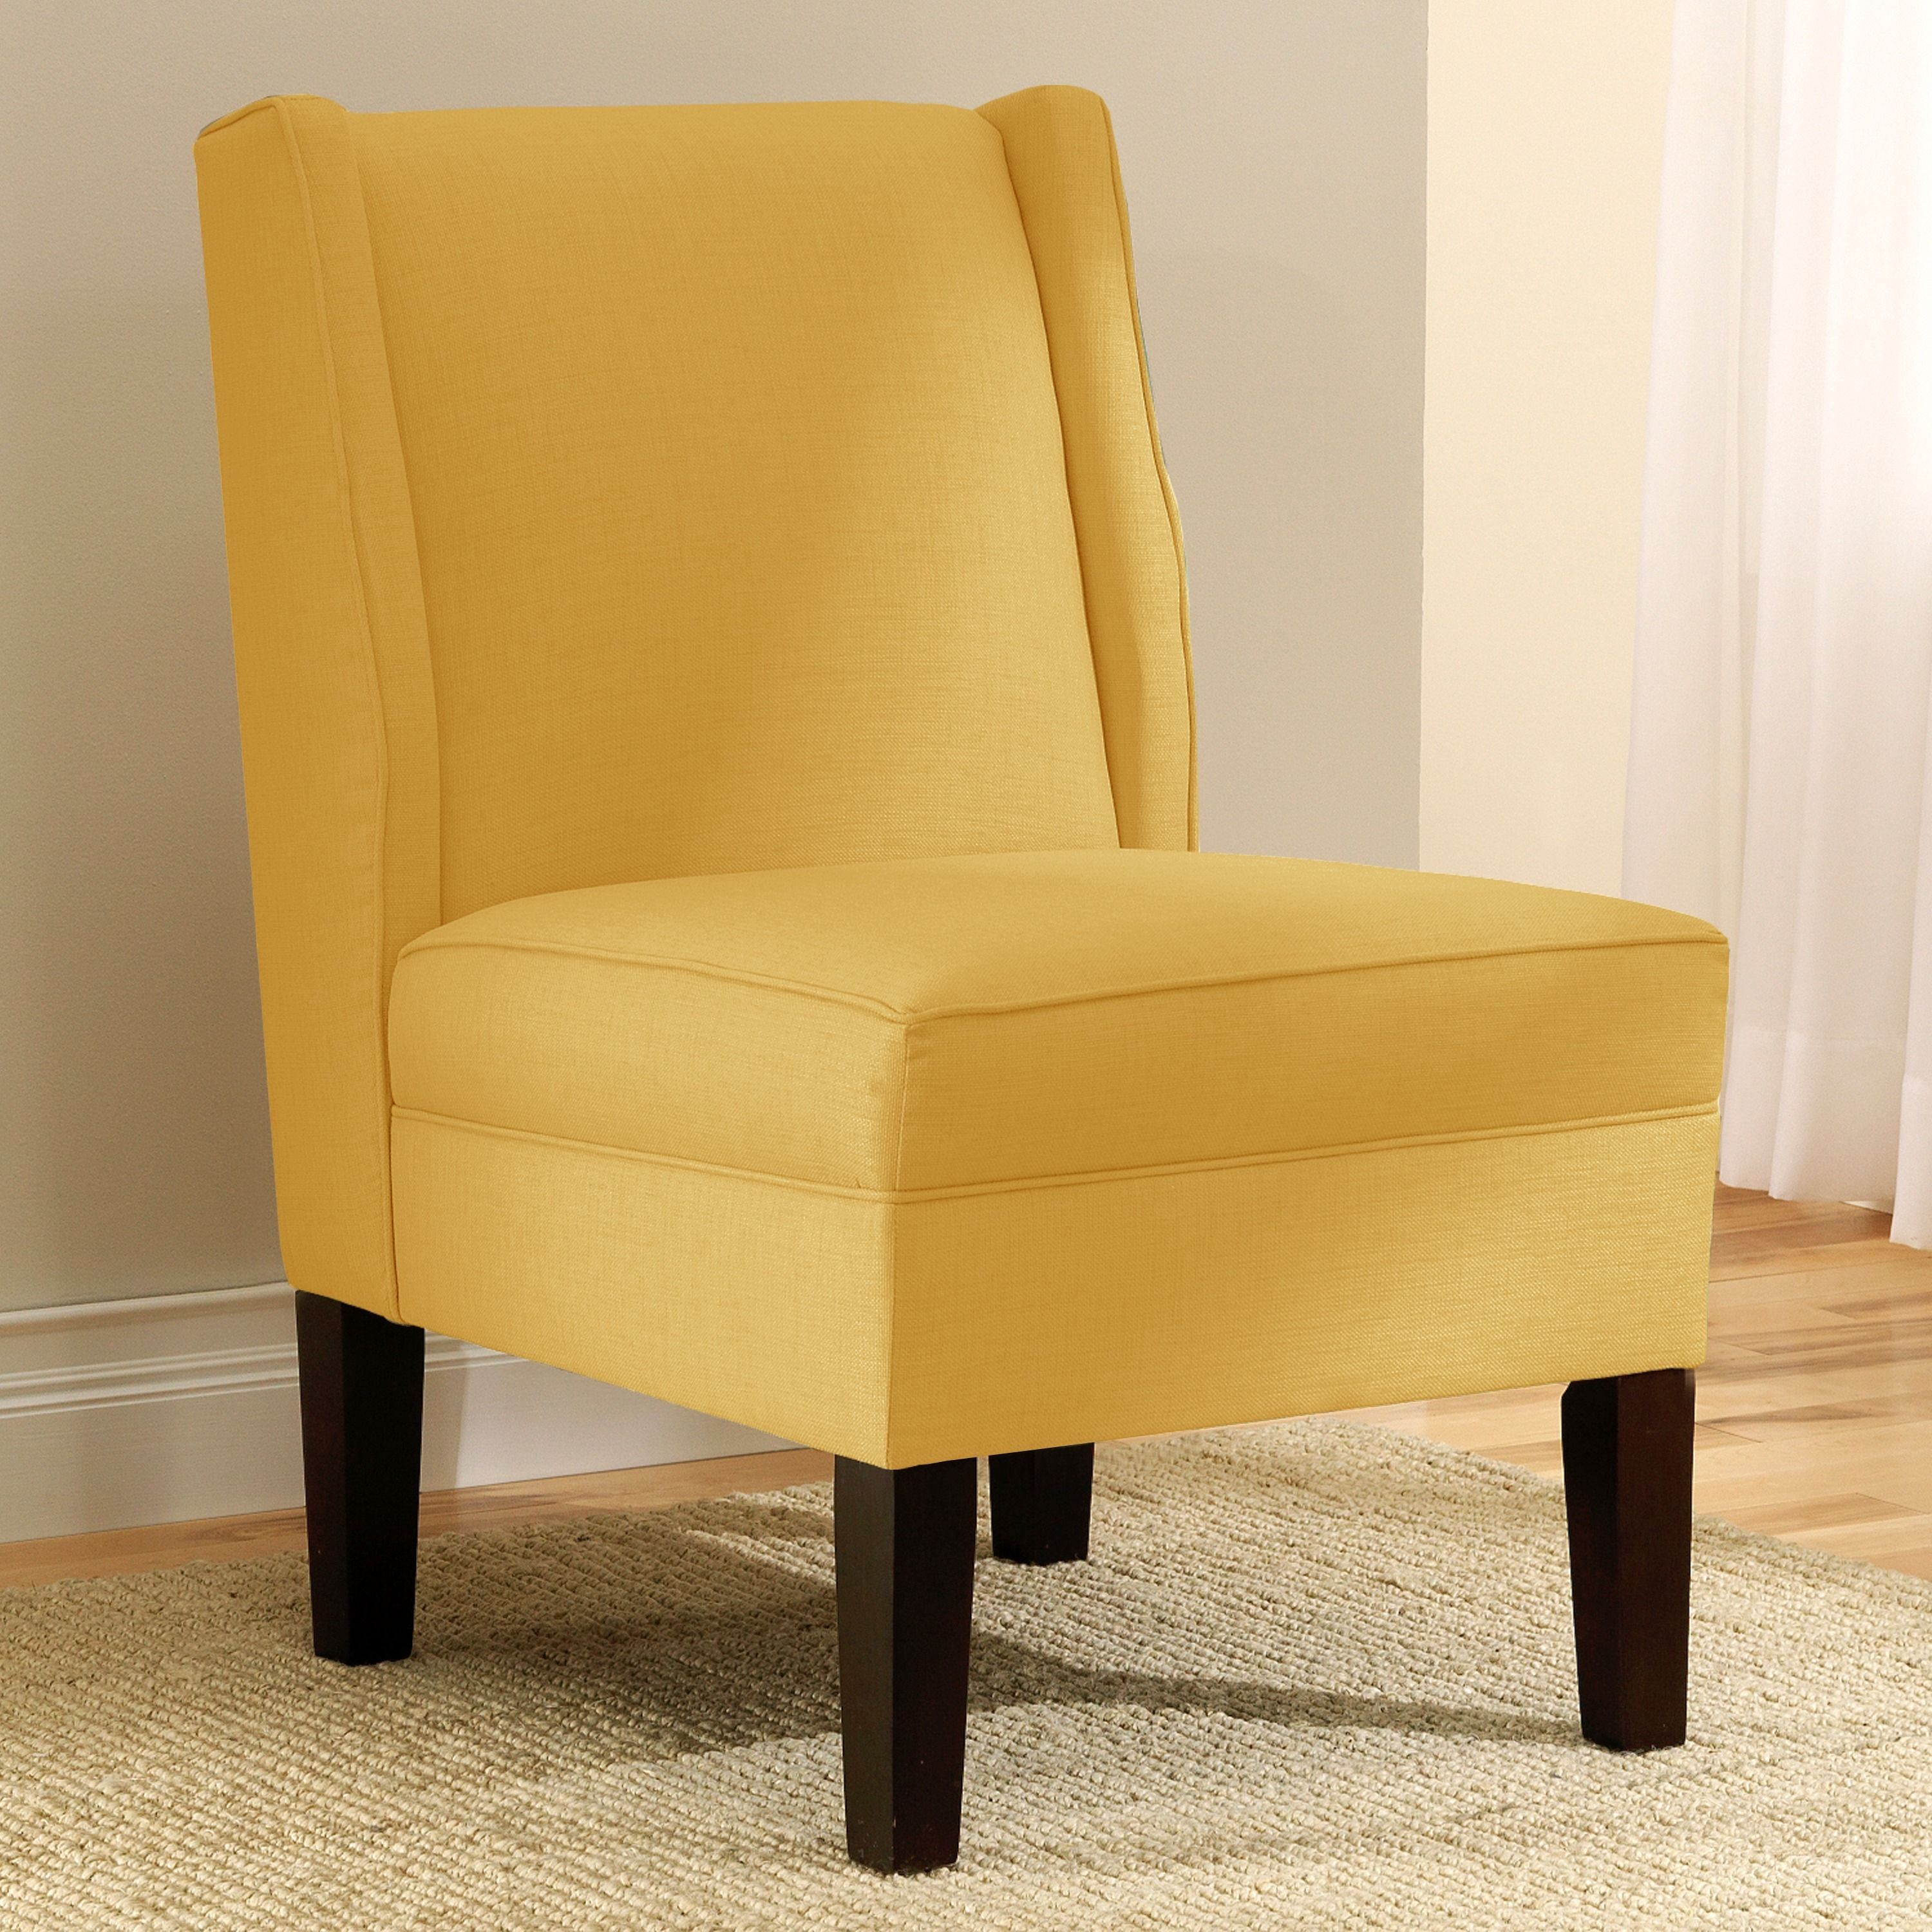 chairs model fabric livings image comwp home wingback back toddman hd contentuploadschristopher christopher lollagram personable upholstered in knight chair living high ideas club room